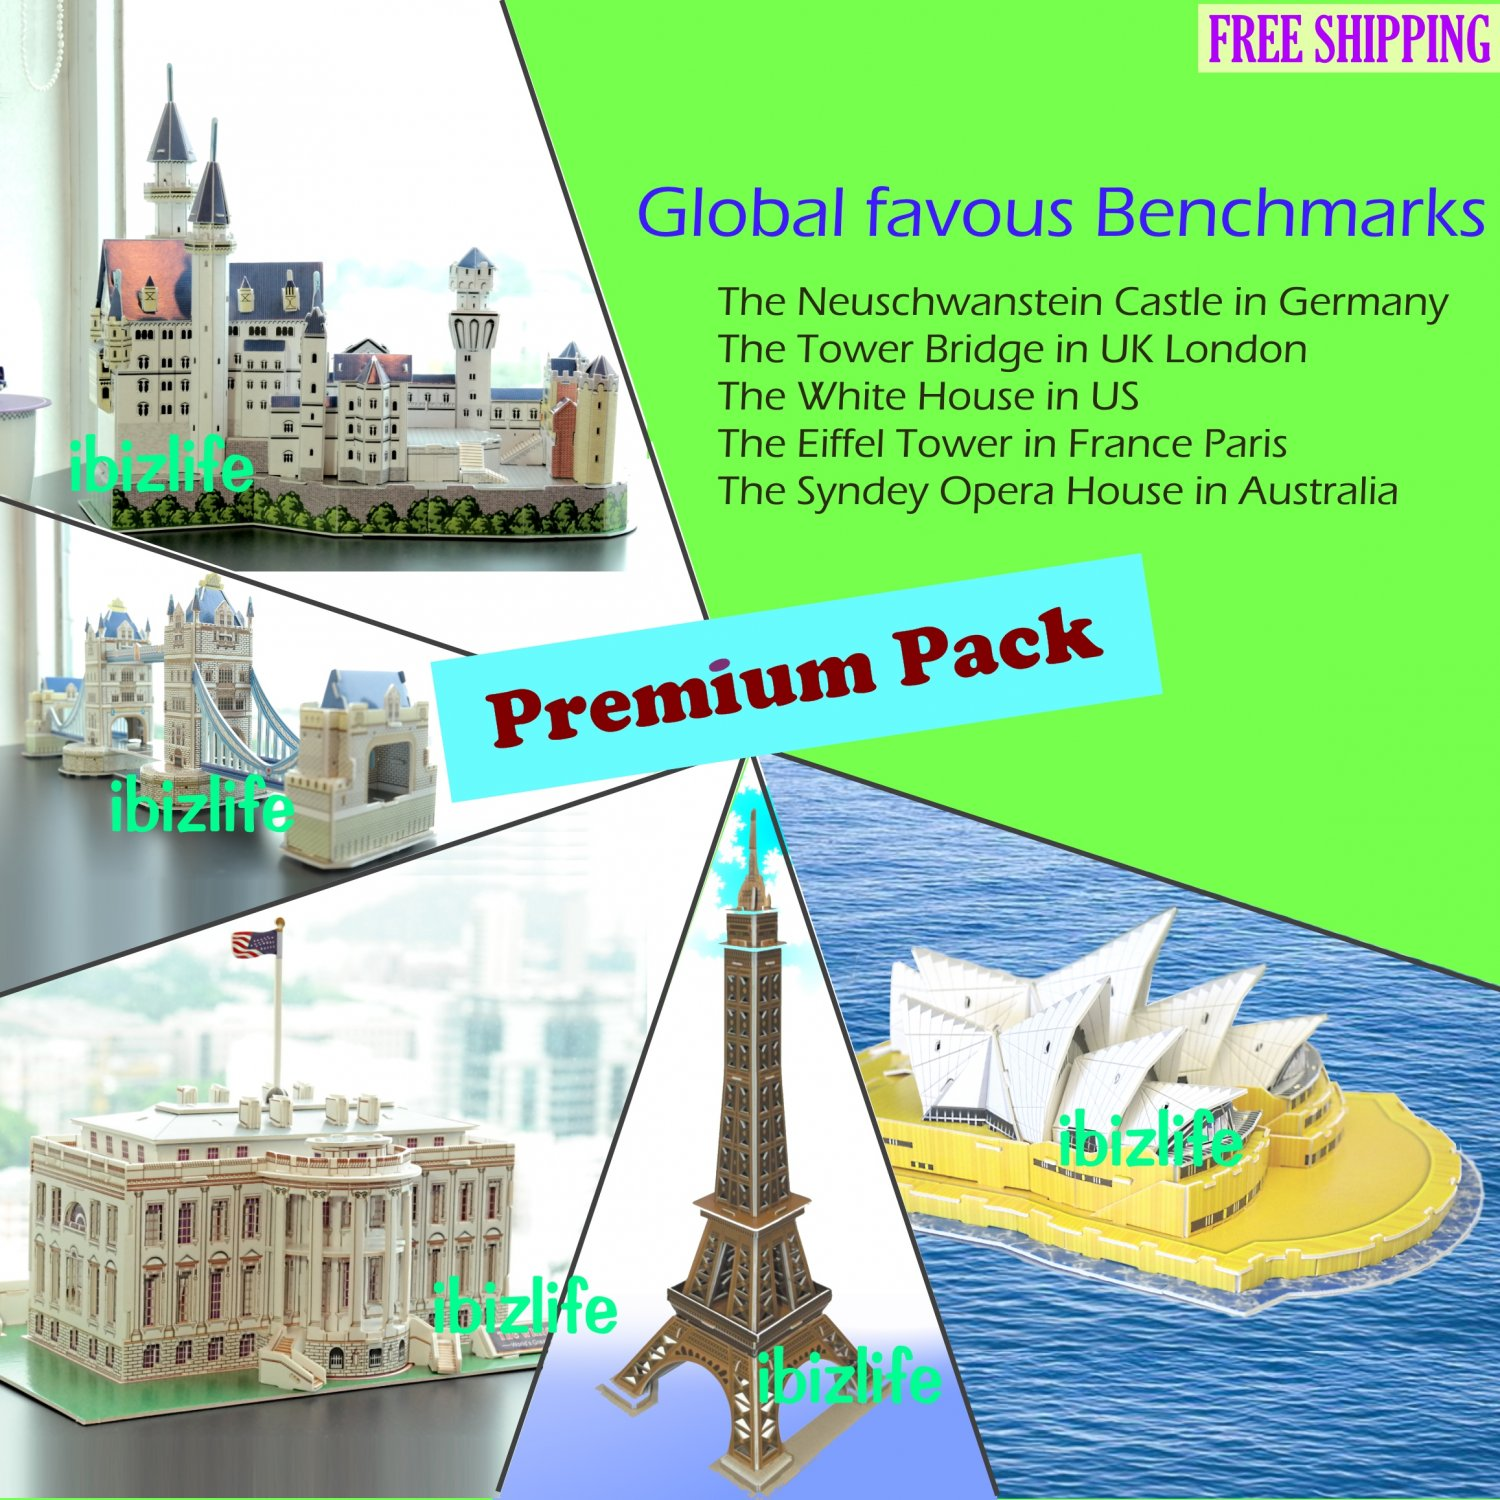 5 Global Benchmarks 3D PUZZLE DIY jigsaw model in a Premium Packs as gift & Home Deco (PC46)